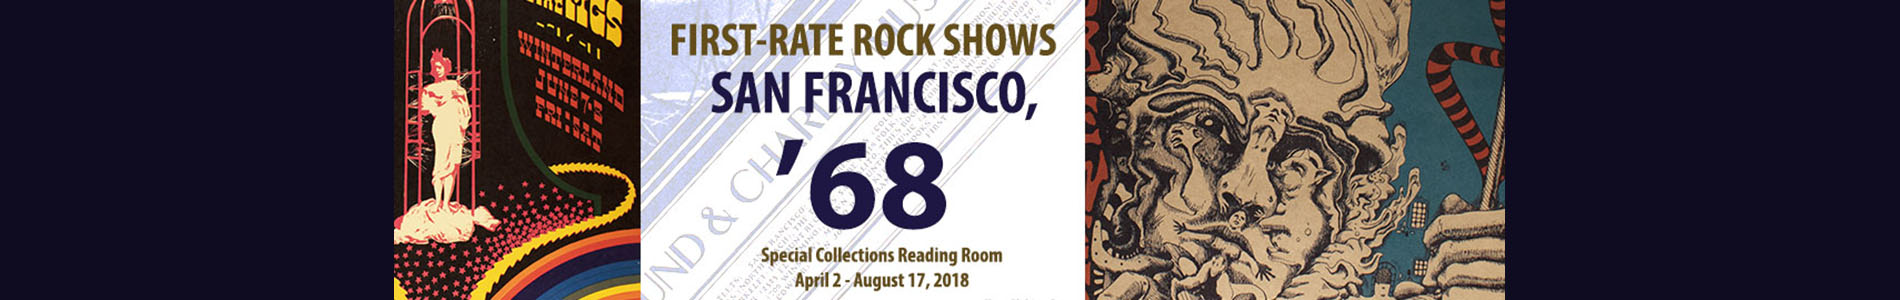 Banner Image for First-Rate Rock Shows: San Francisco '68